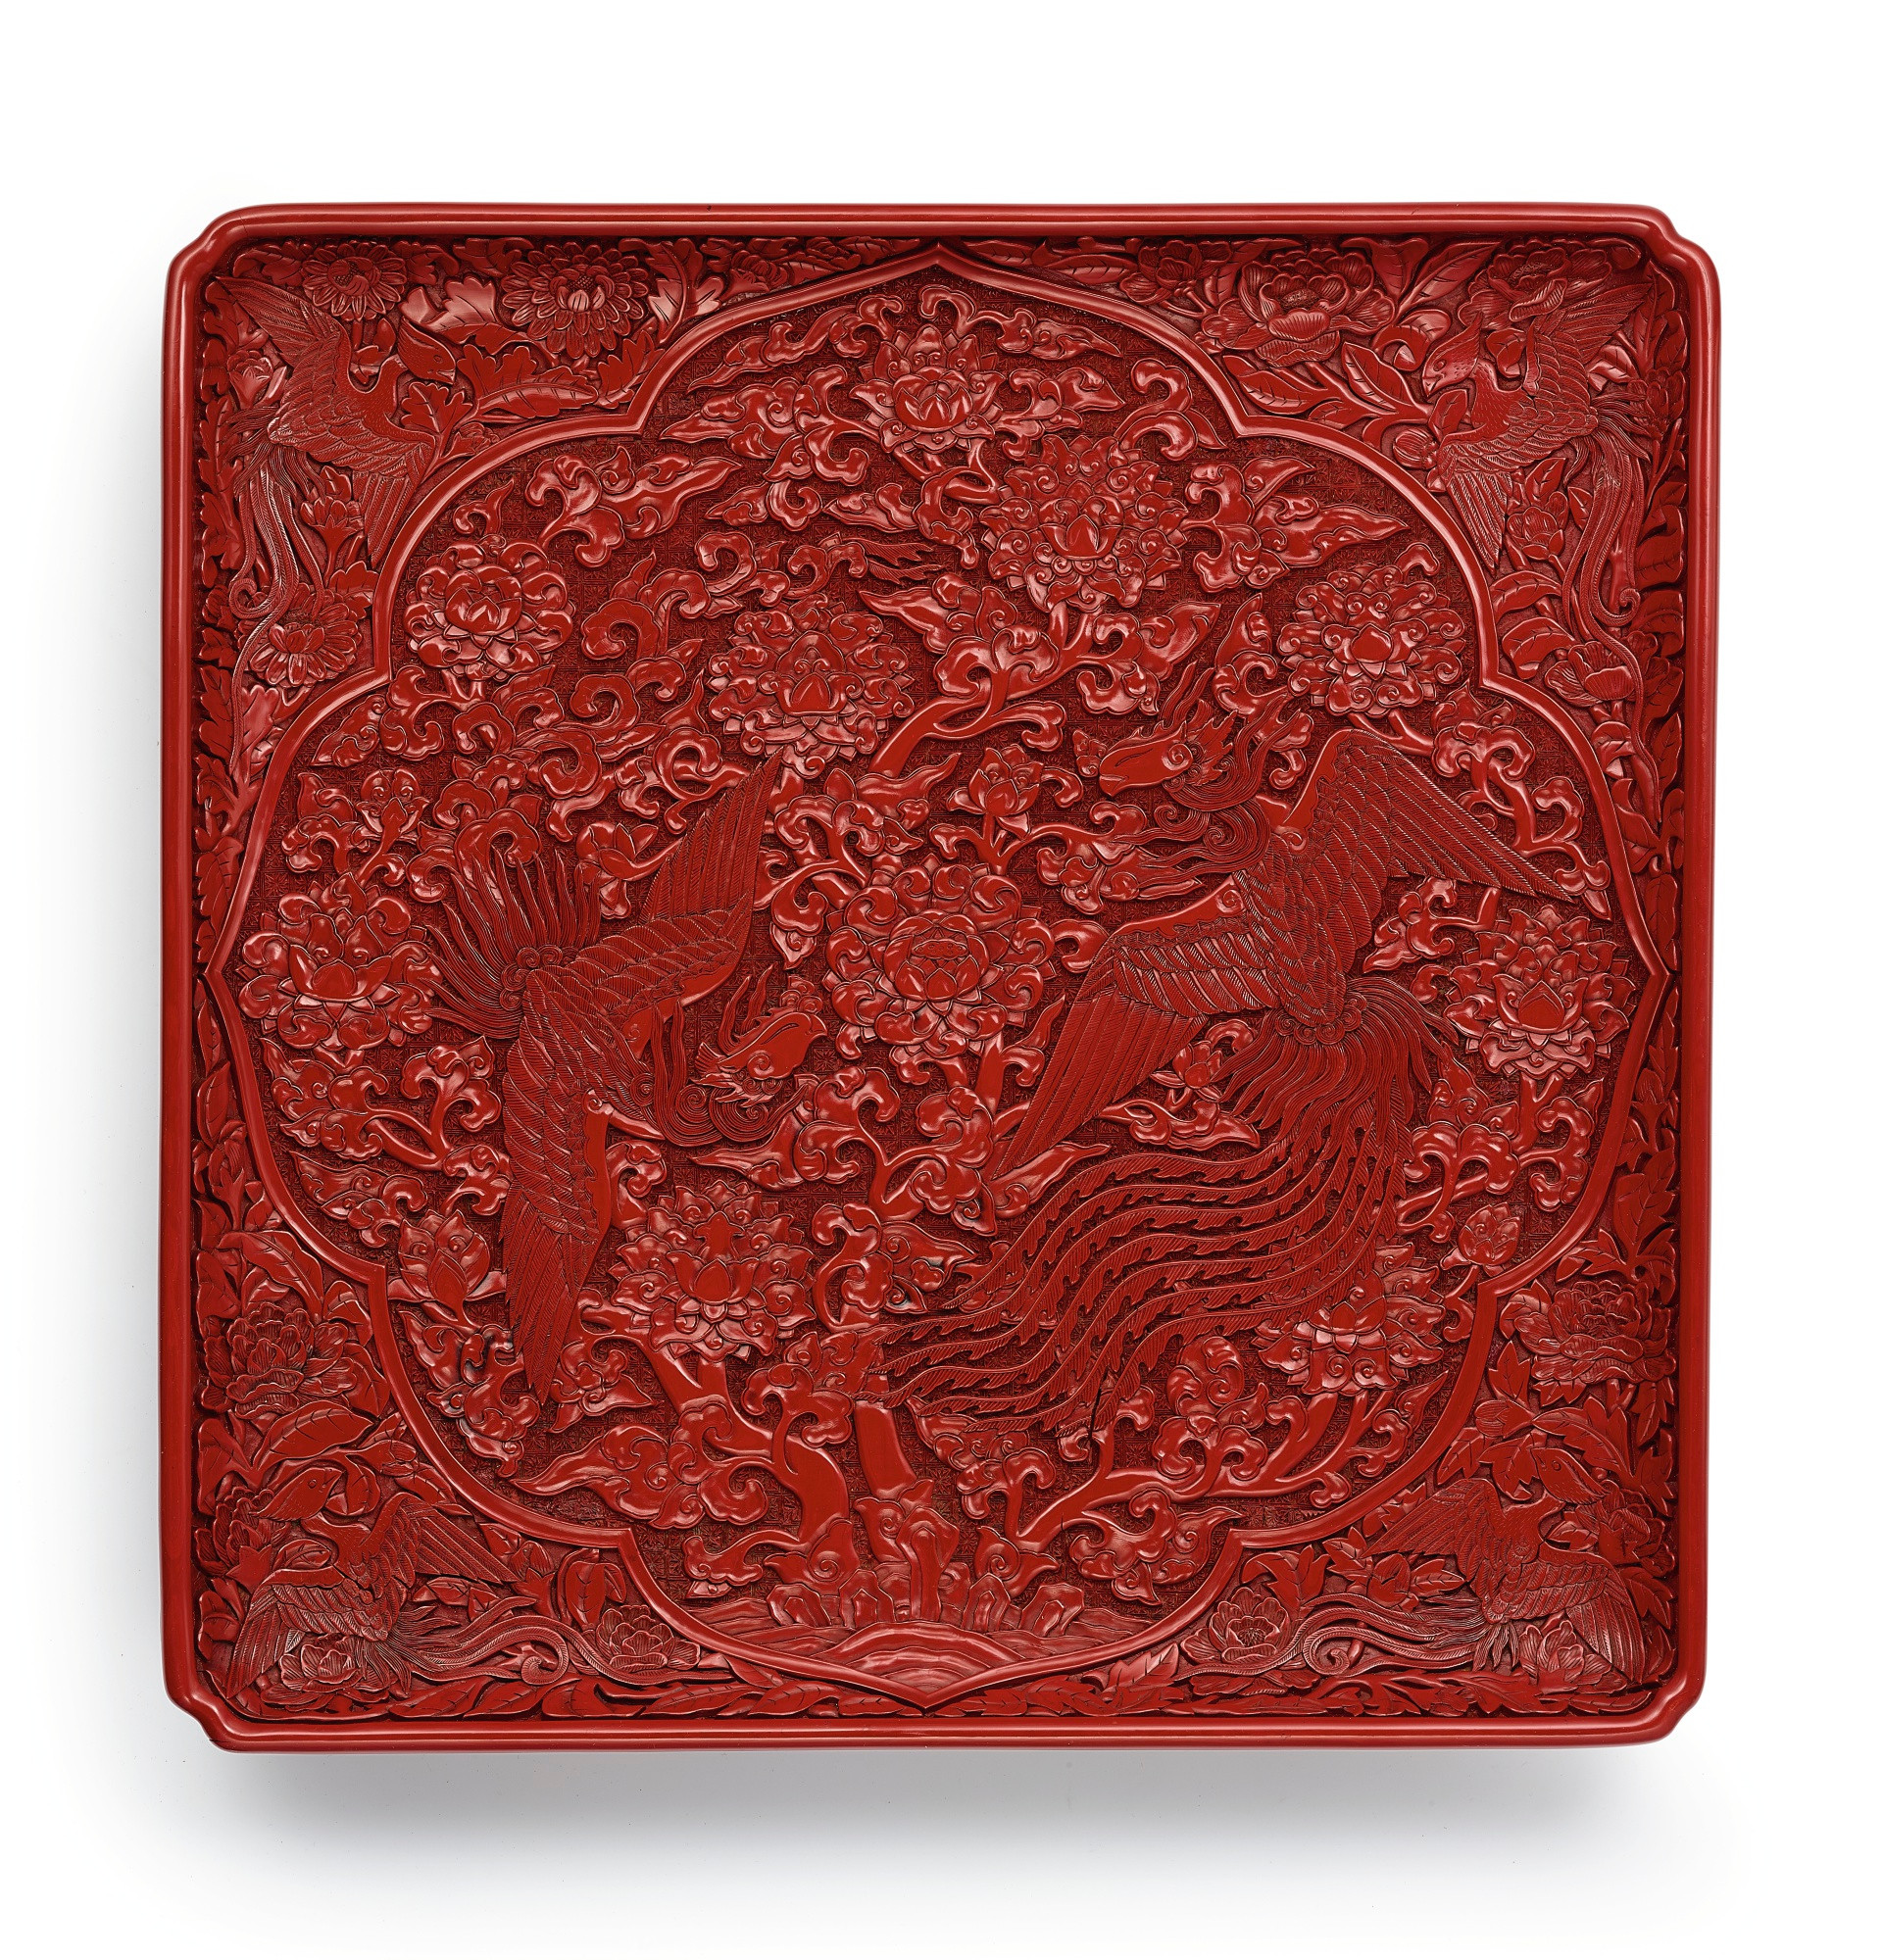 27 Awesome Chinese Cinnabar Lacquer Vase 2021 free download chinese cinnabar lacquer vase of an outstanding and extremely rare large carved cinnabar lacquer pertaining to an outstanding and extremely rare large carved cinnabar lacquer phoenix square